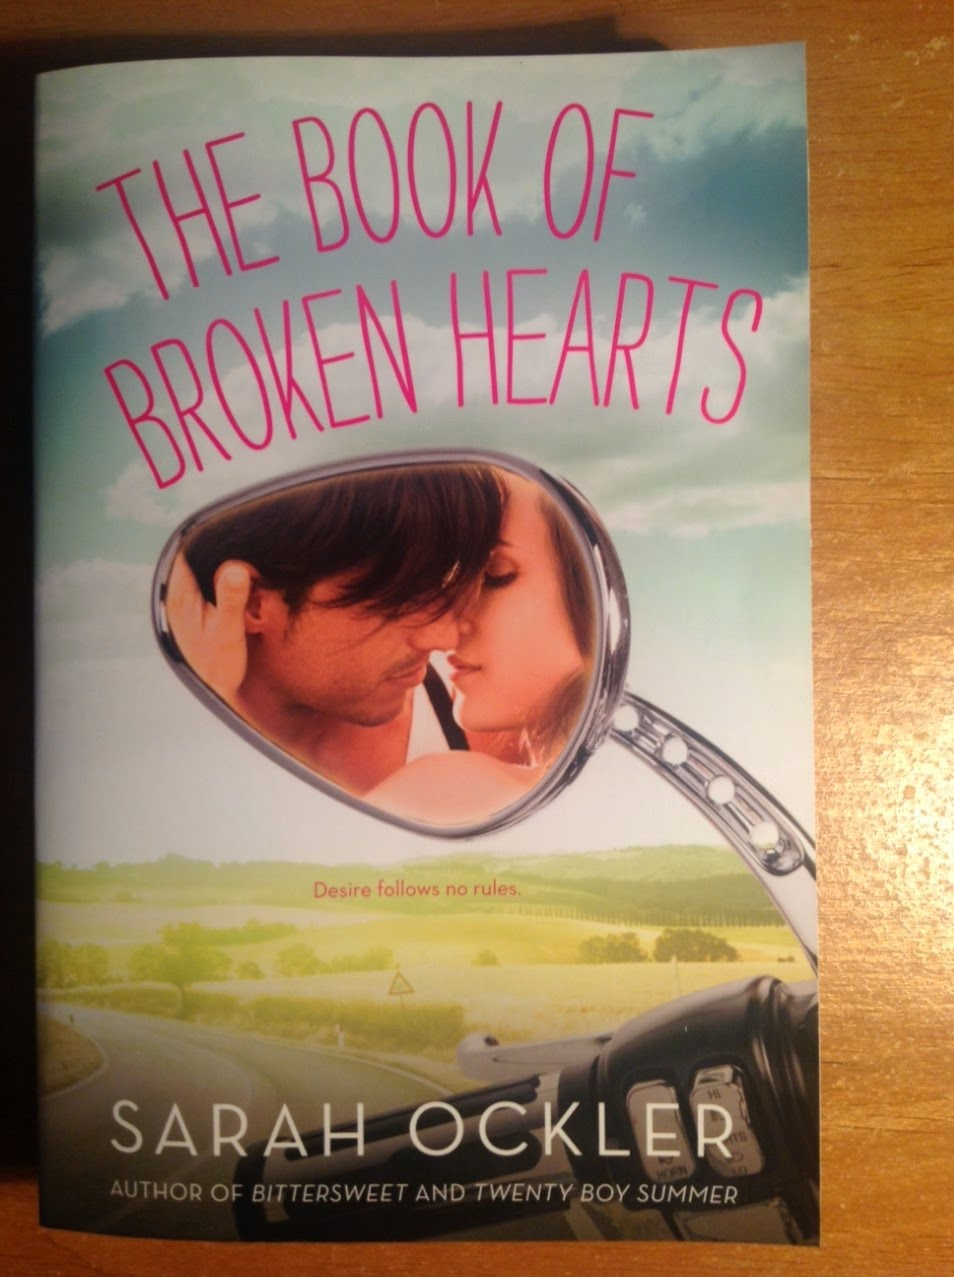 The Book of Broken Hearts by Sarah Ockler - PDF free download eBook